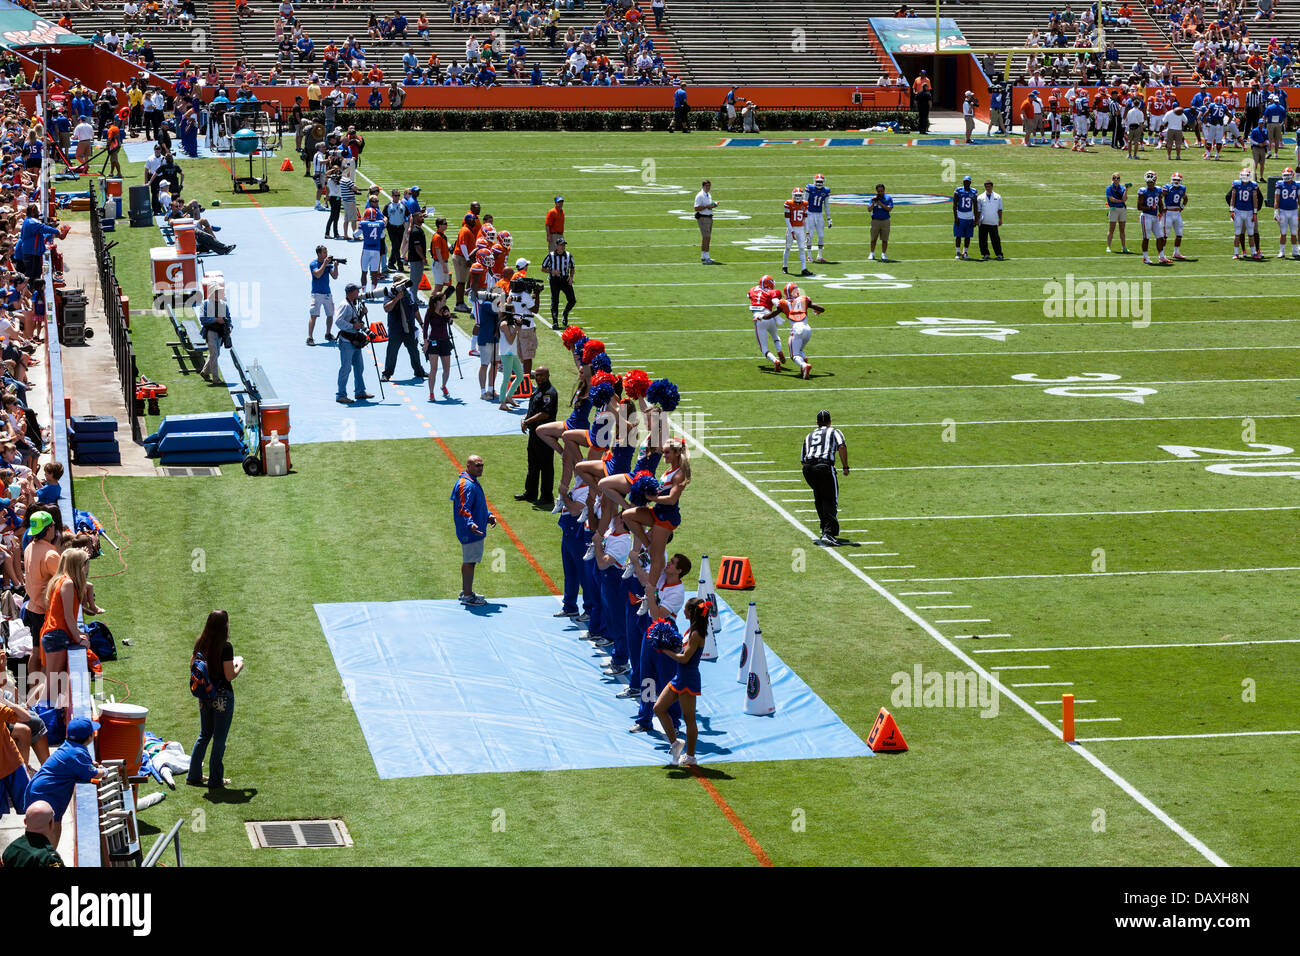 UF Gators cheerleaders 2013 Annual Spring Orange and Blue football game Ben Hill Griffin Stadium Florida Field a.k.a. - Stock Image